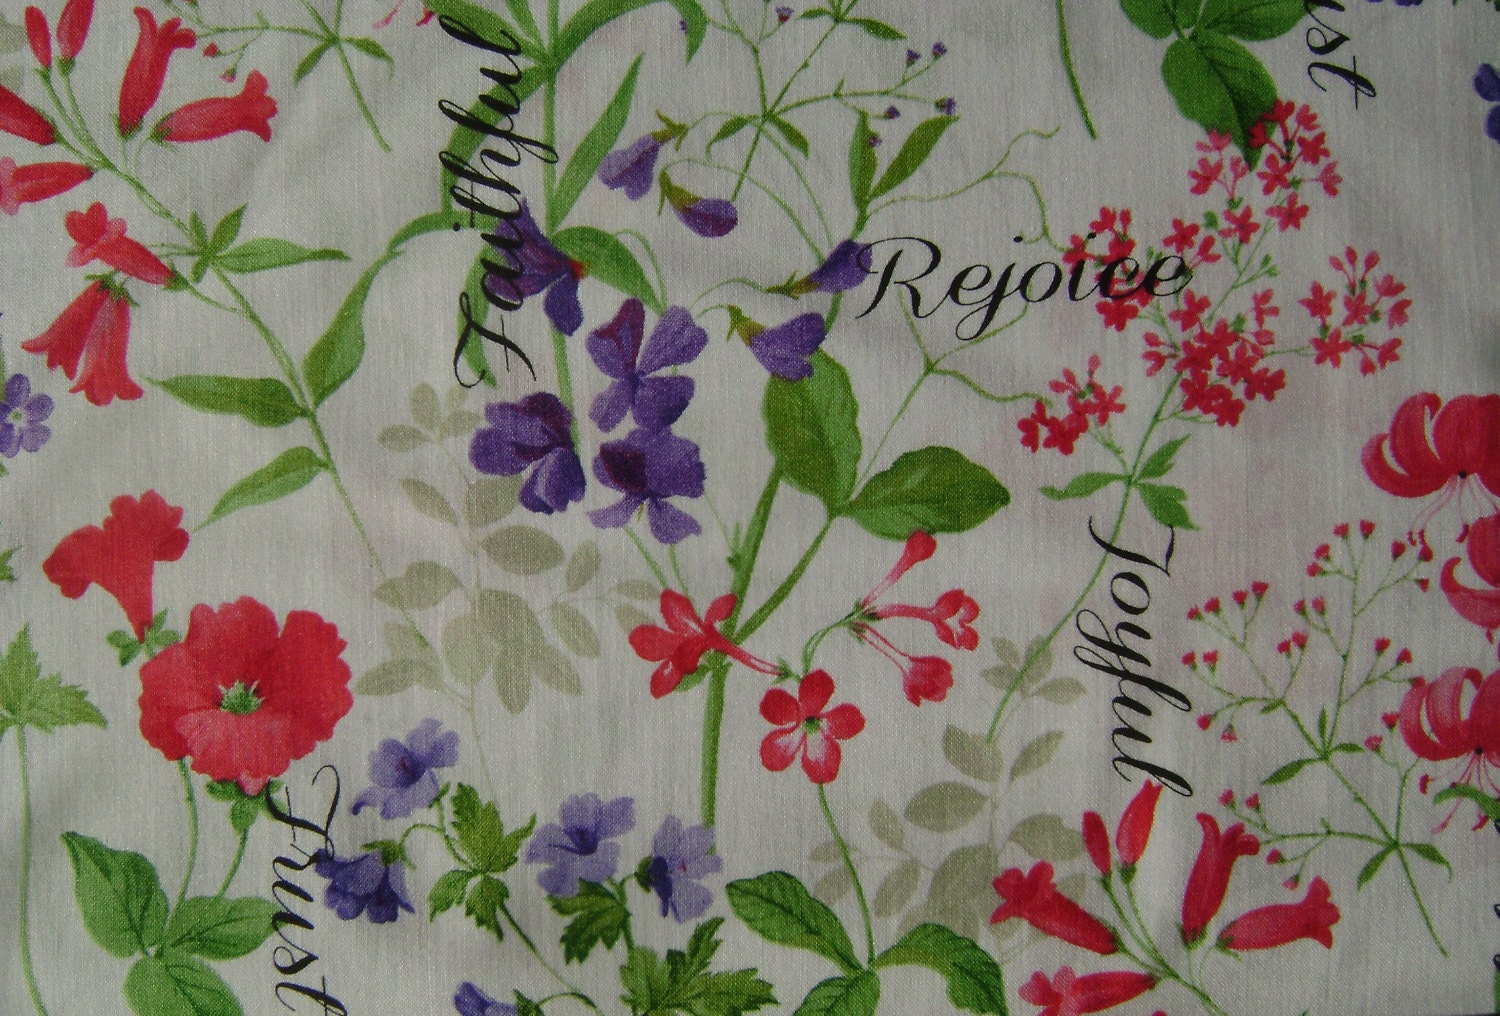 Spring Garden With Words Cotton Fabric Sold By The Yard From GGselections On Etsy Studio